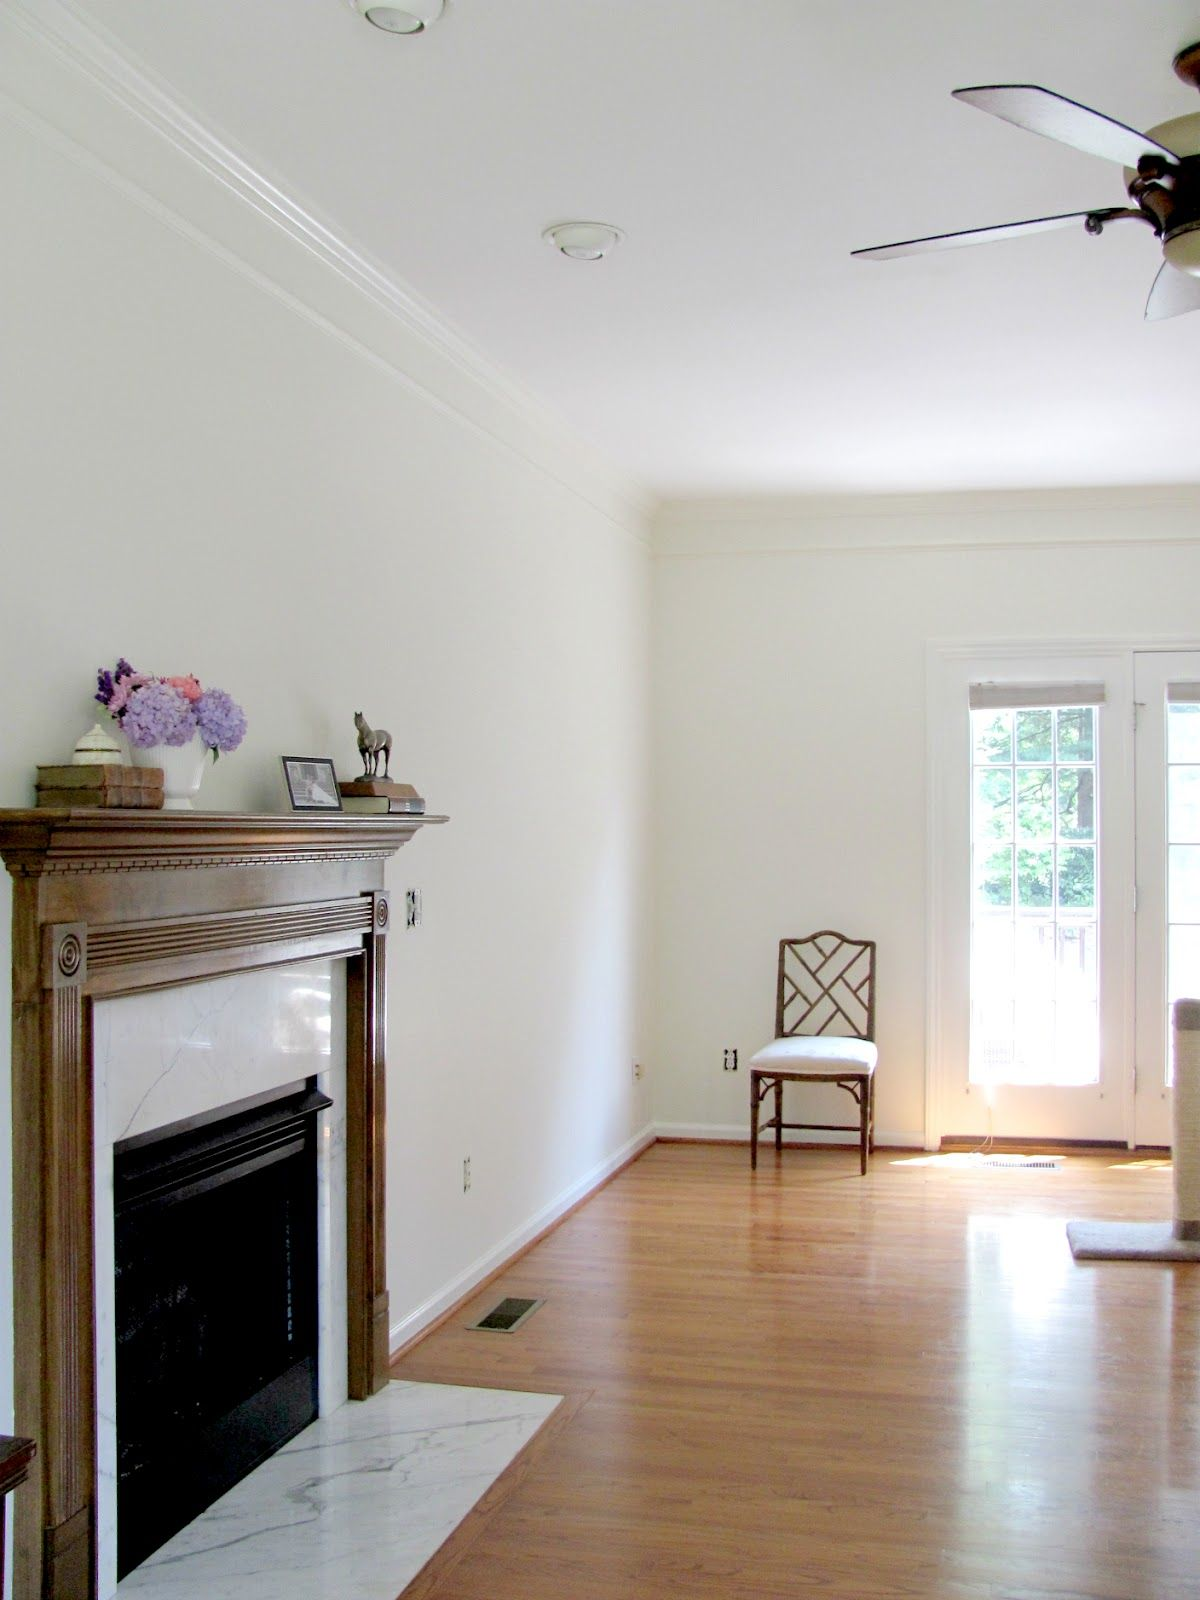 Walls Benjamin Moore Acadia White Oc 38 In Eggshell Crown Molding Sherwin Williams Dover White